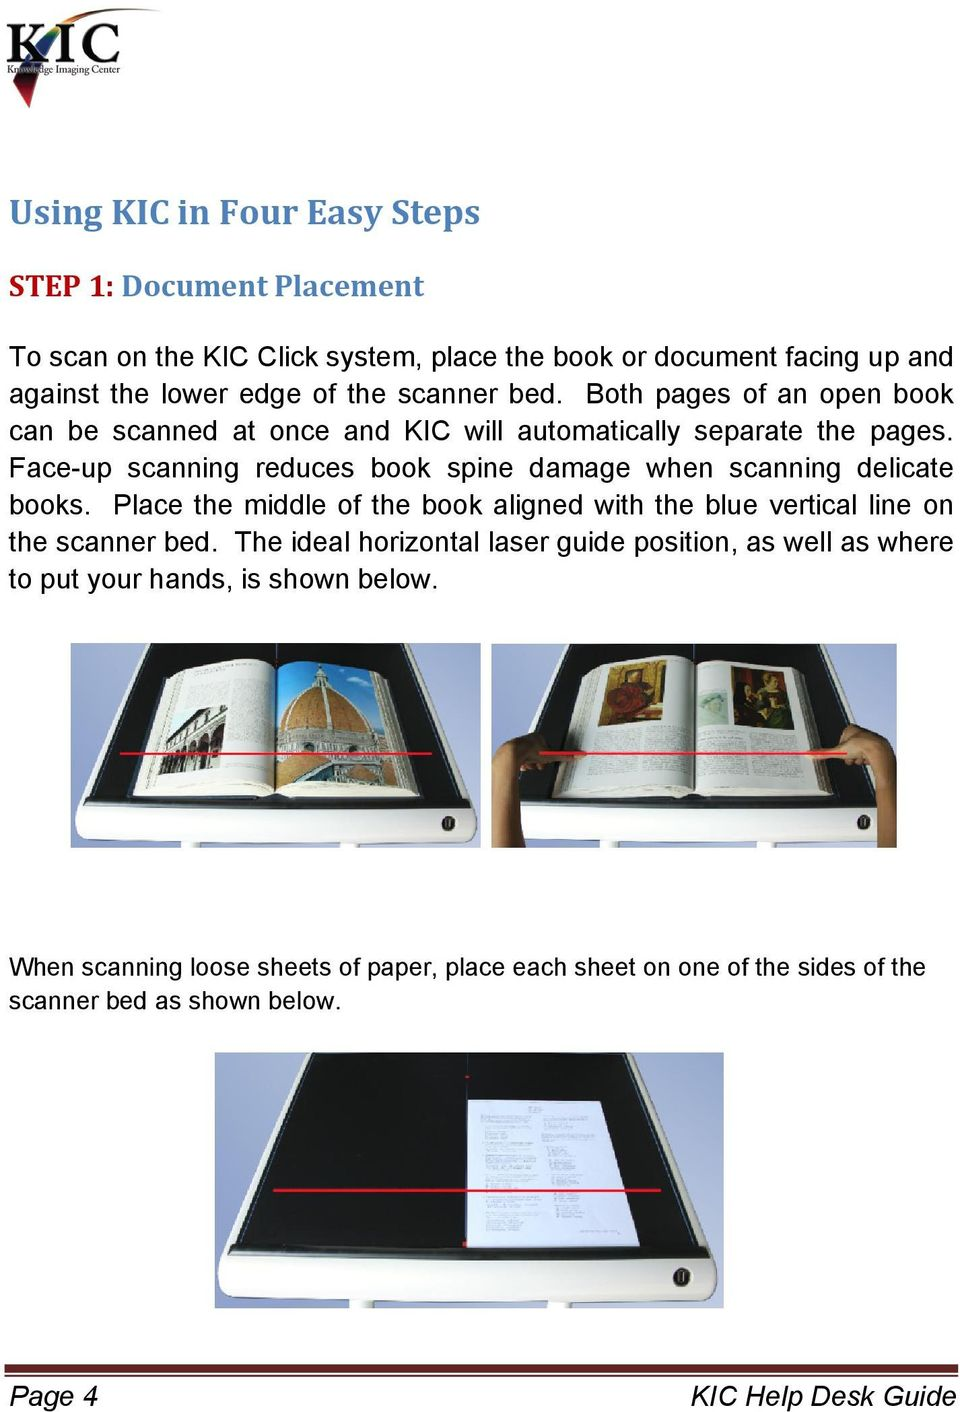 Face-up scanning reduces book spine damage when scanning delicate books. Place the middle of the book aligned with the blue vertical line on the scanner bed.